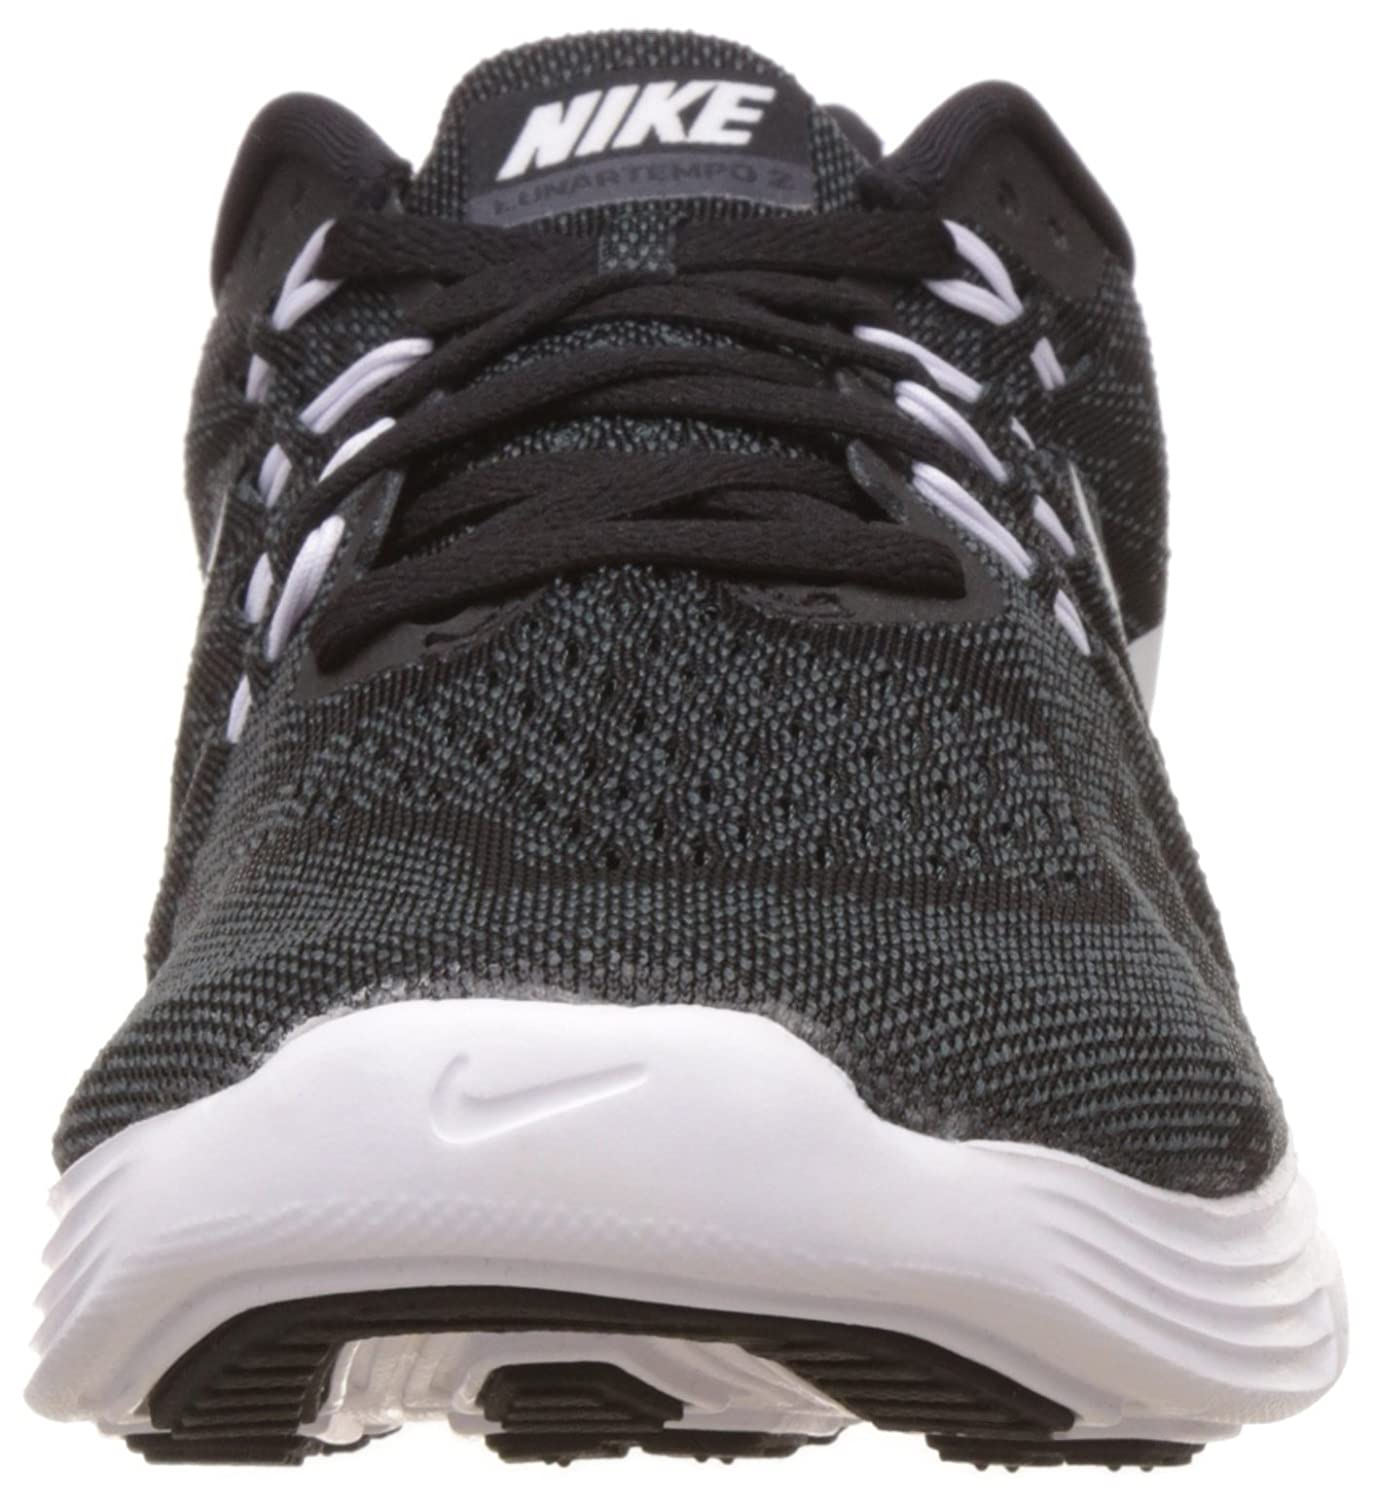 ... coupon for nike mens lunartempo 2 black white and anthracite running  shoes 11 uk india 46 de409d9f4